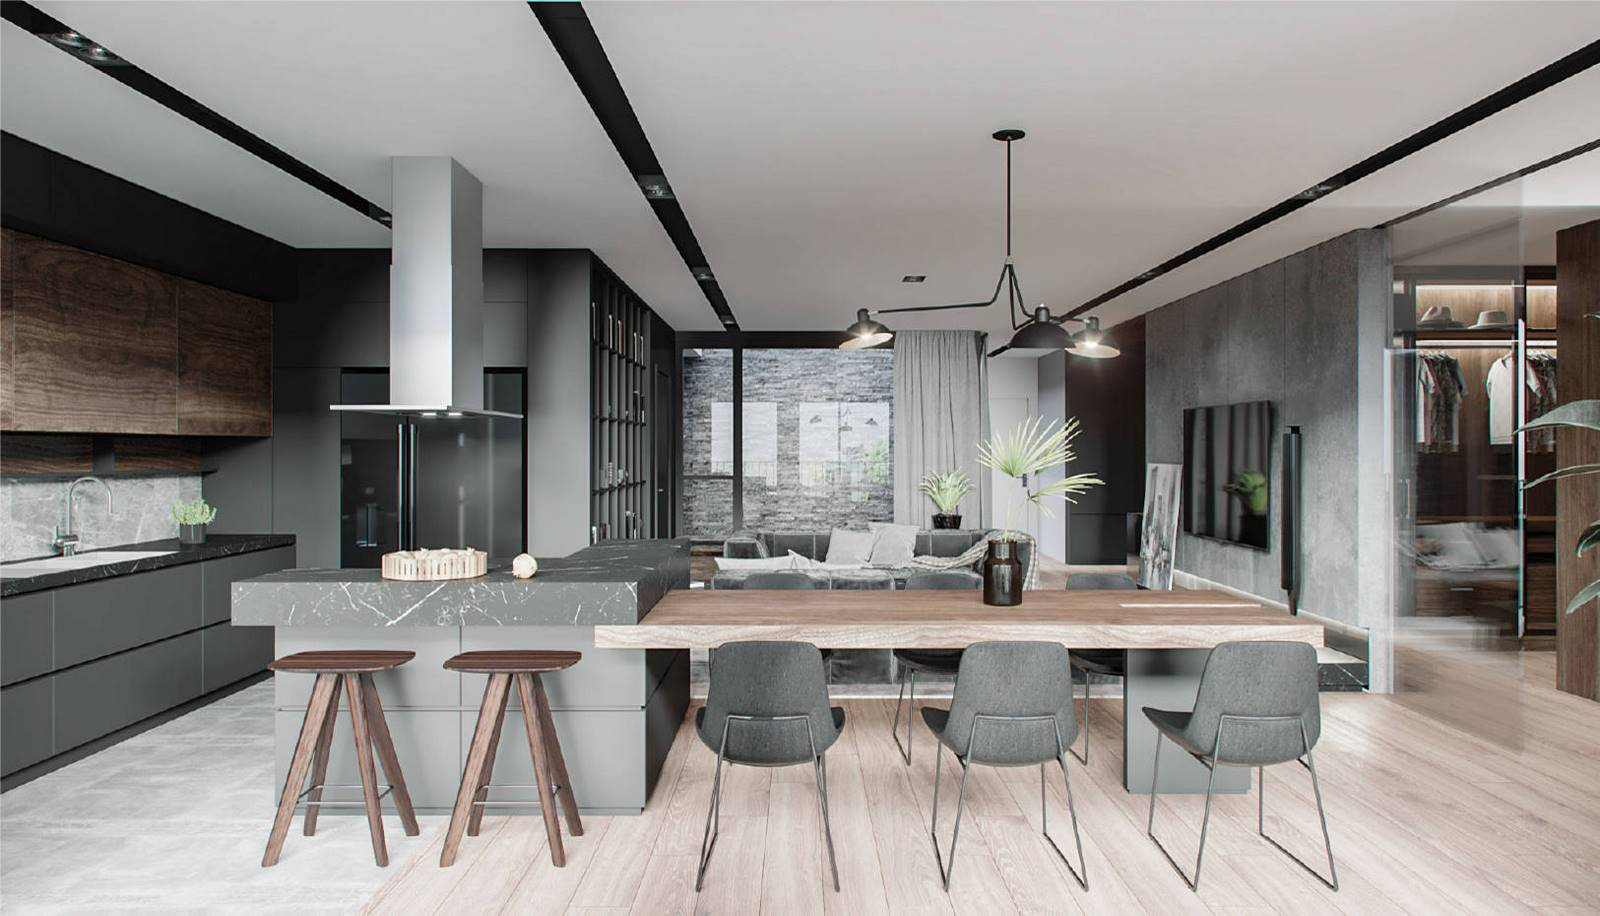 With such a chic spacious kitchen, you are bound to feel free and relaxed. As you can see the prevailing color in the kitchen is grey. The large dining table of grey blends fine with both the walls and all other kitchen furniture pieces. The room is equipped with the most important contemporary household appliances that make this space not only fully functional, but also stylish. Don't you want to have your kitchen similar to this? Our professional interior designers are always pleased to help you with it. Don't hesitate to call our managers and order the best interior design service in NYC from Grandeur Hills Group right now!